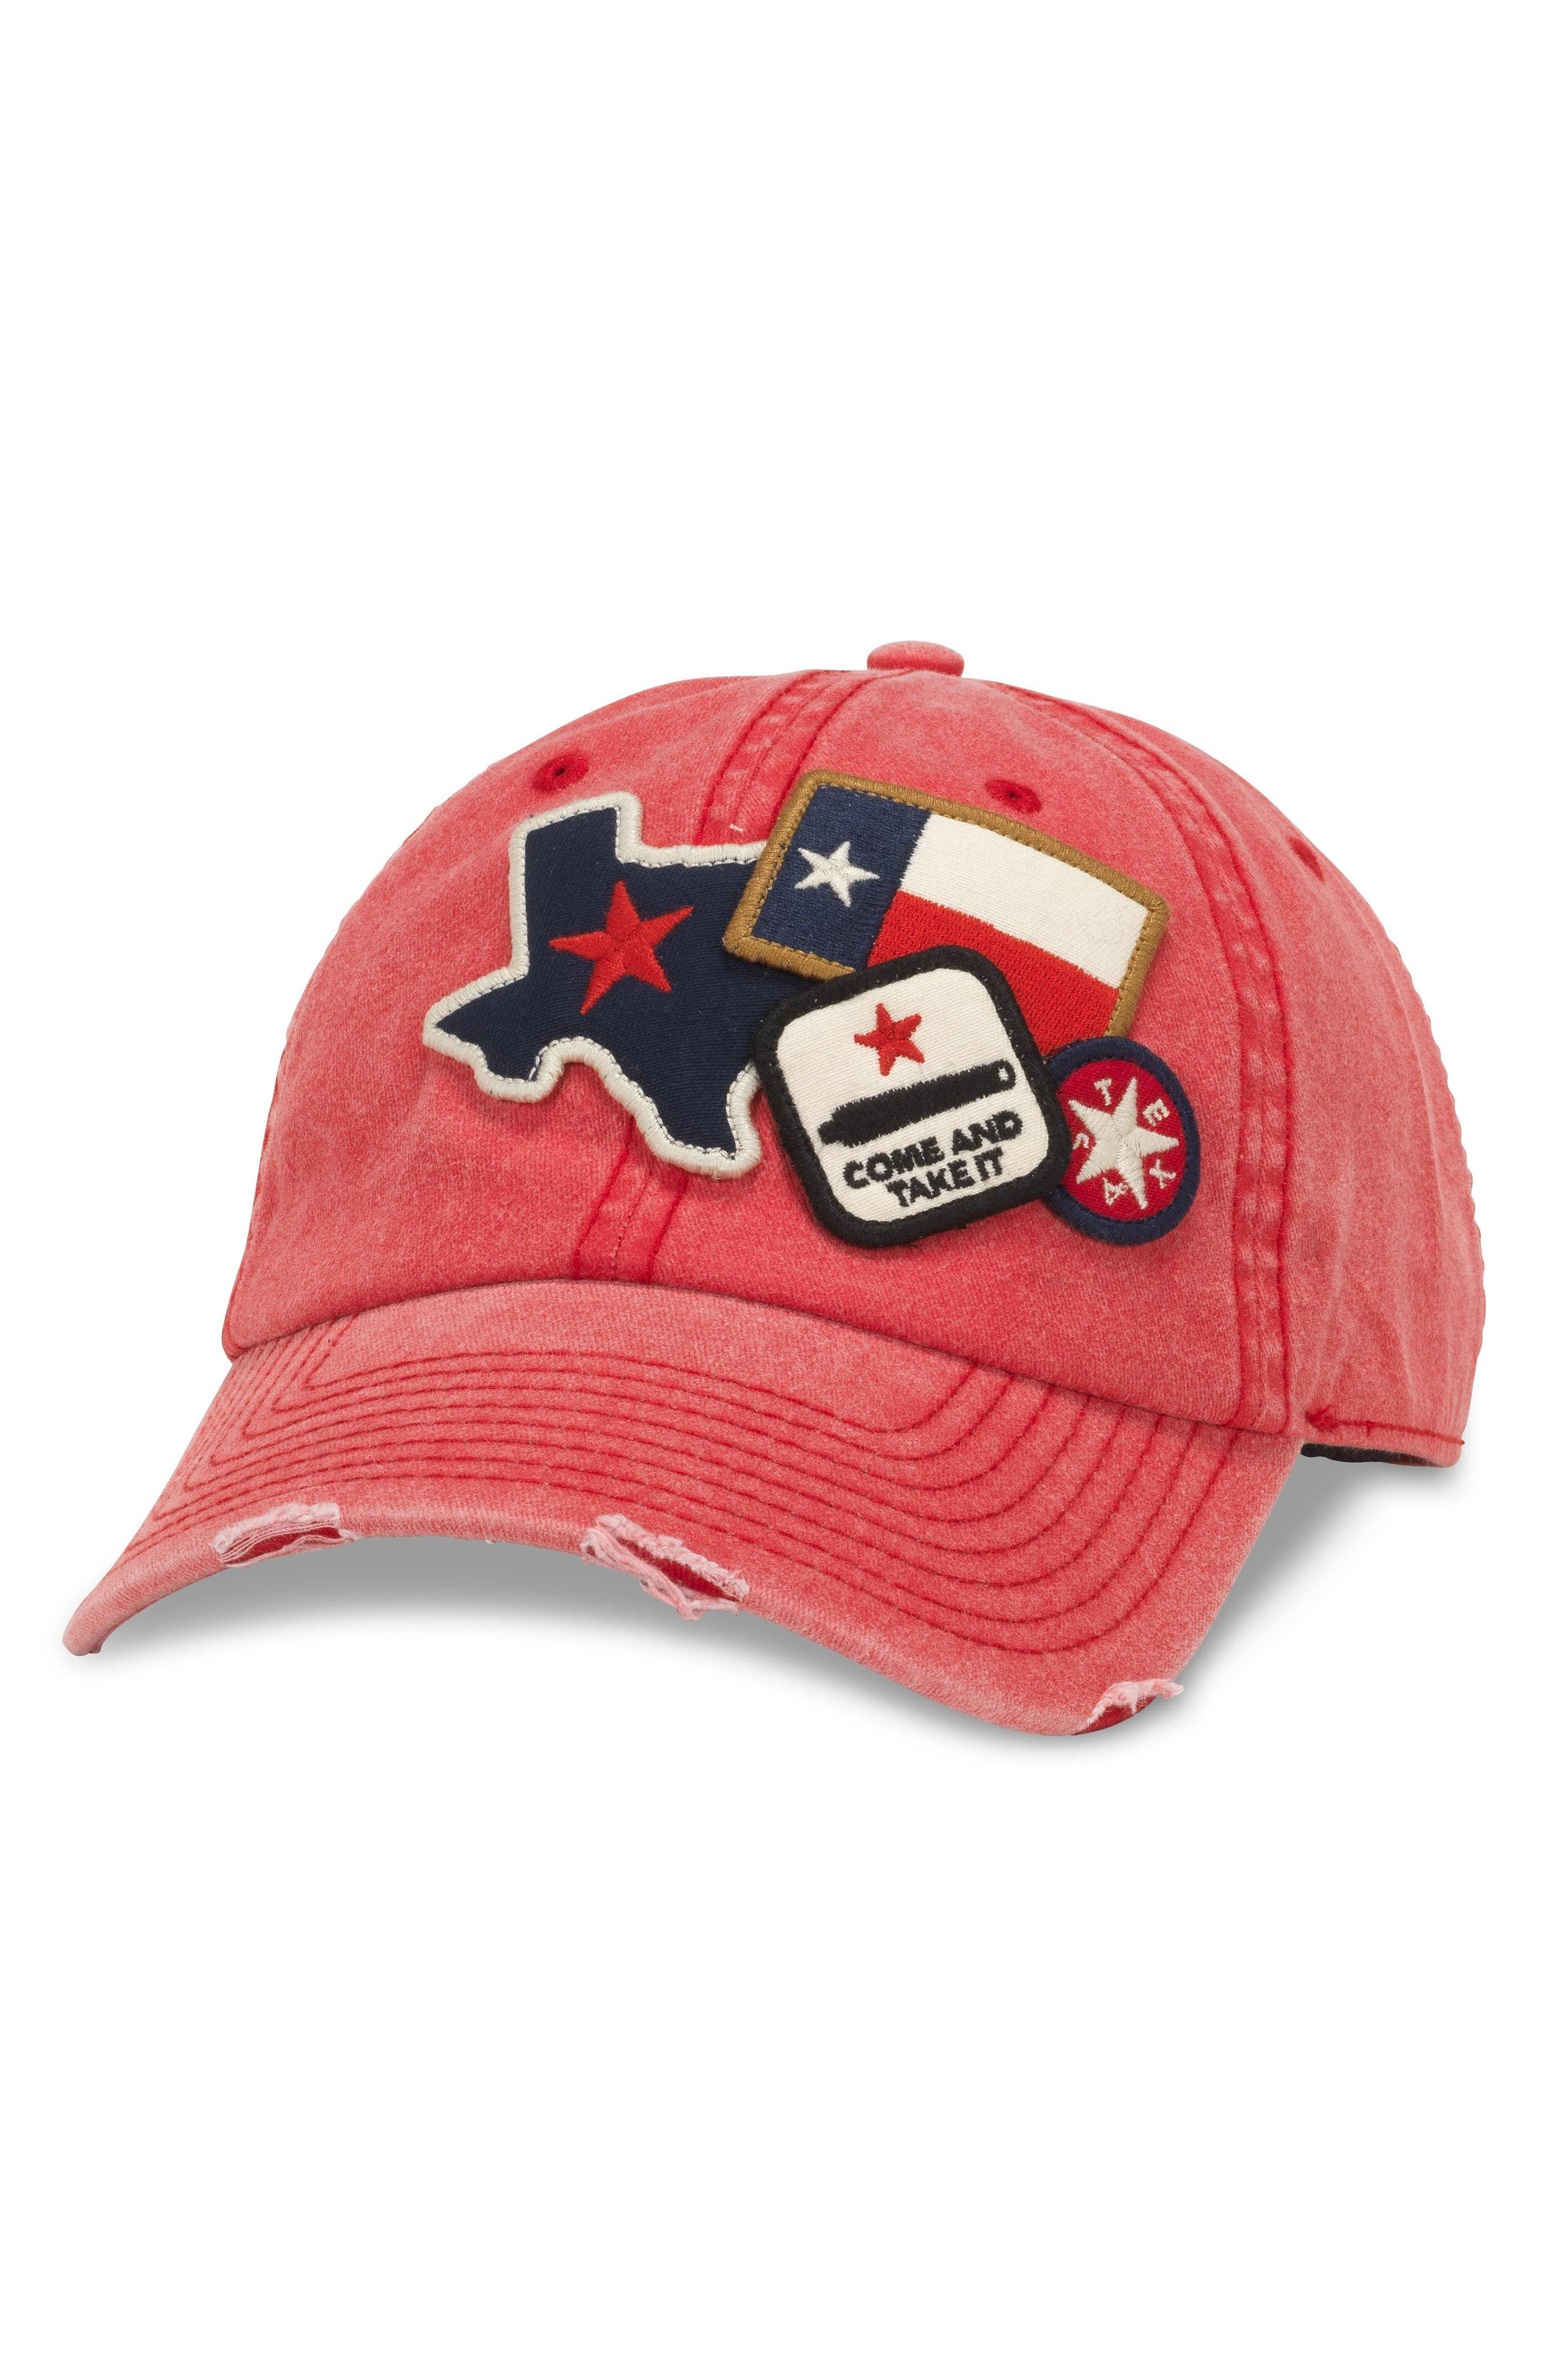 Iconic - Texas Ball Cap,                         Main,                         color, Red